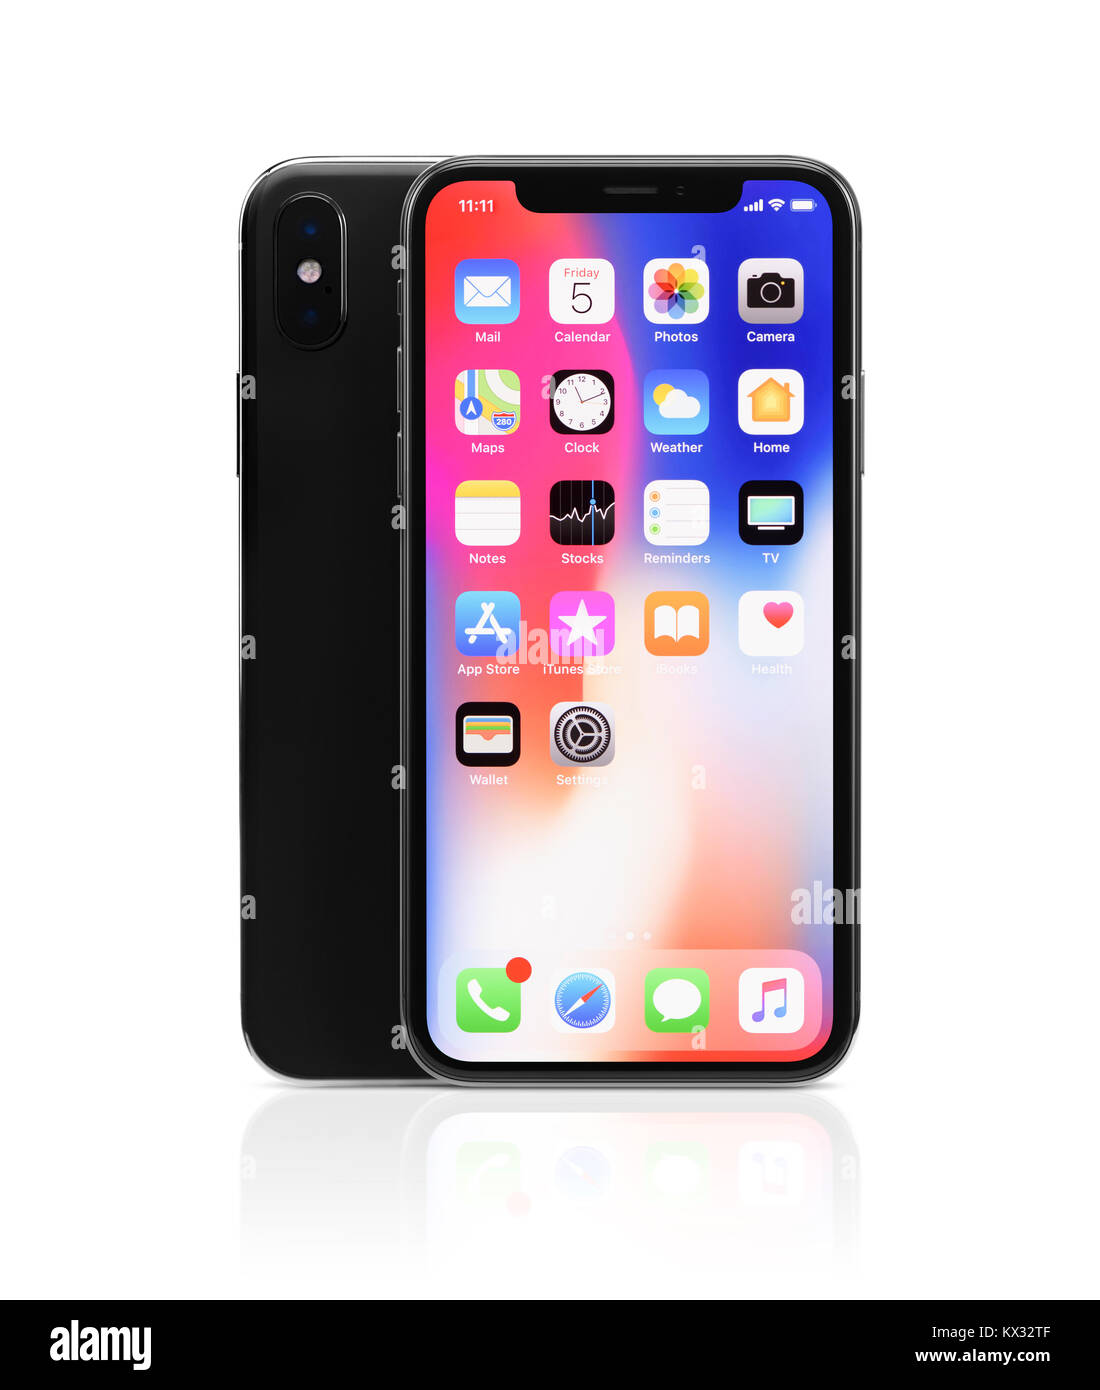 Apple iPhone X, large screen smartphone with dual rear camera, product still life with desktop and app icons on - Stock Image